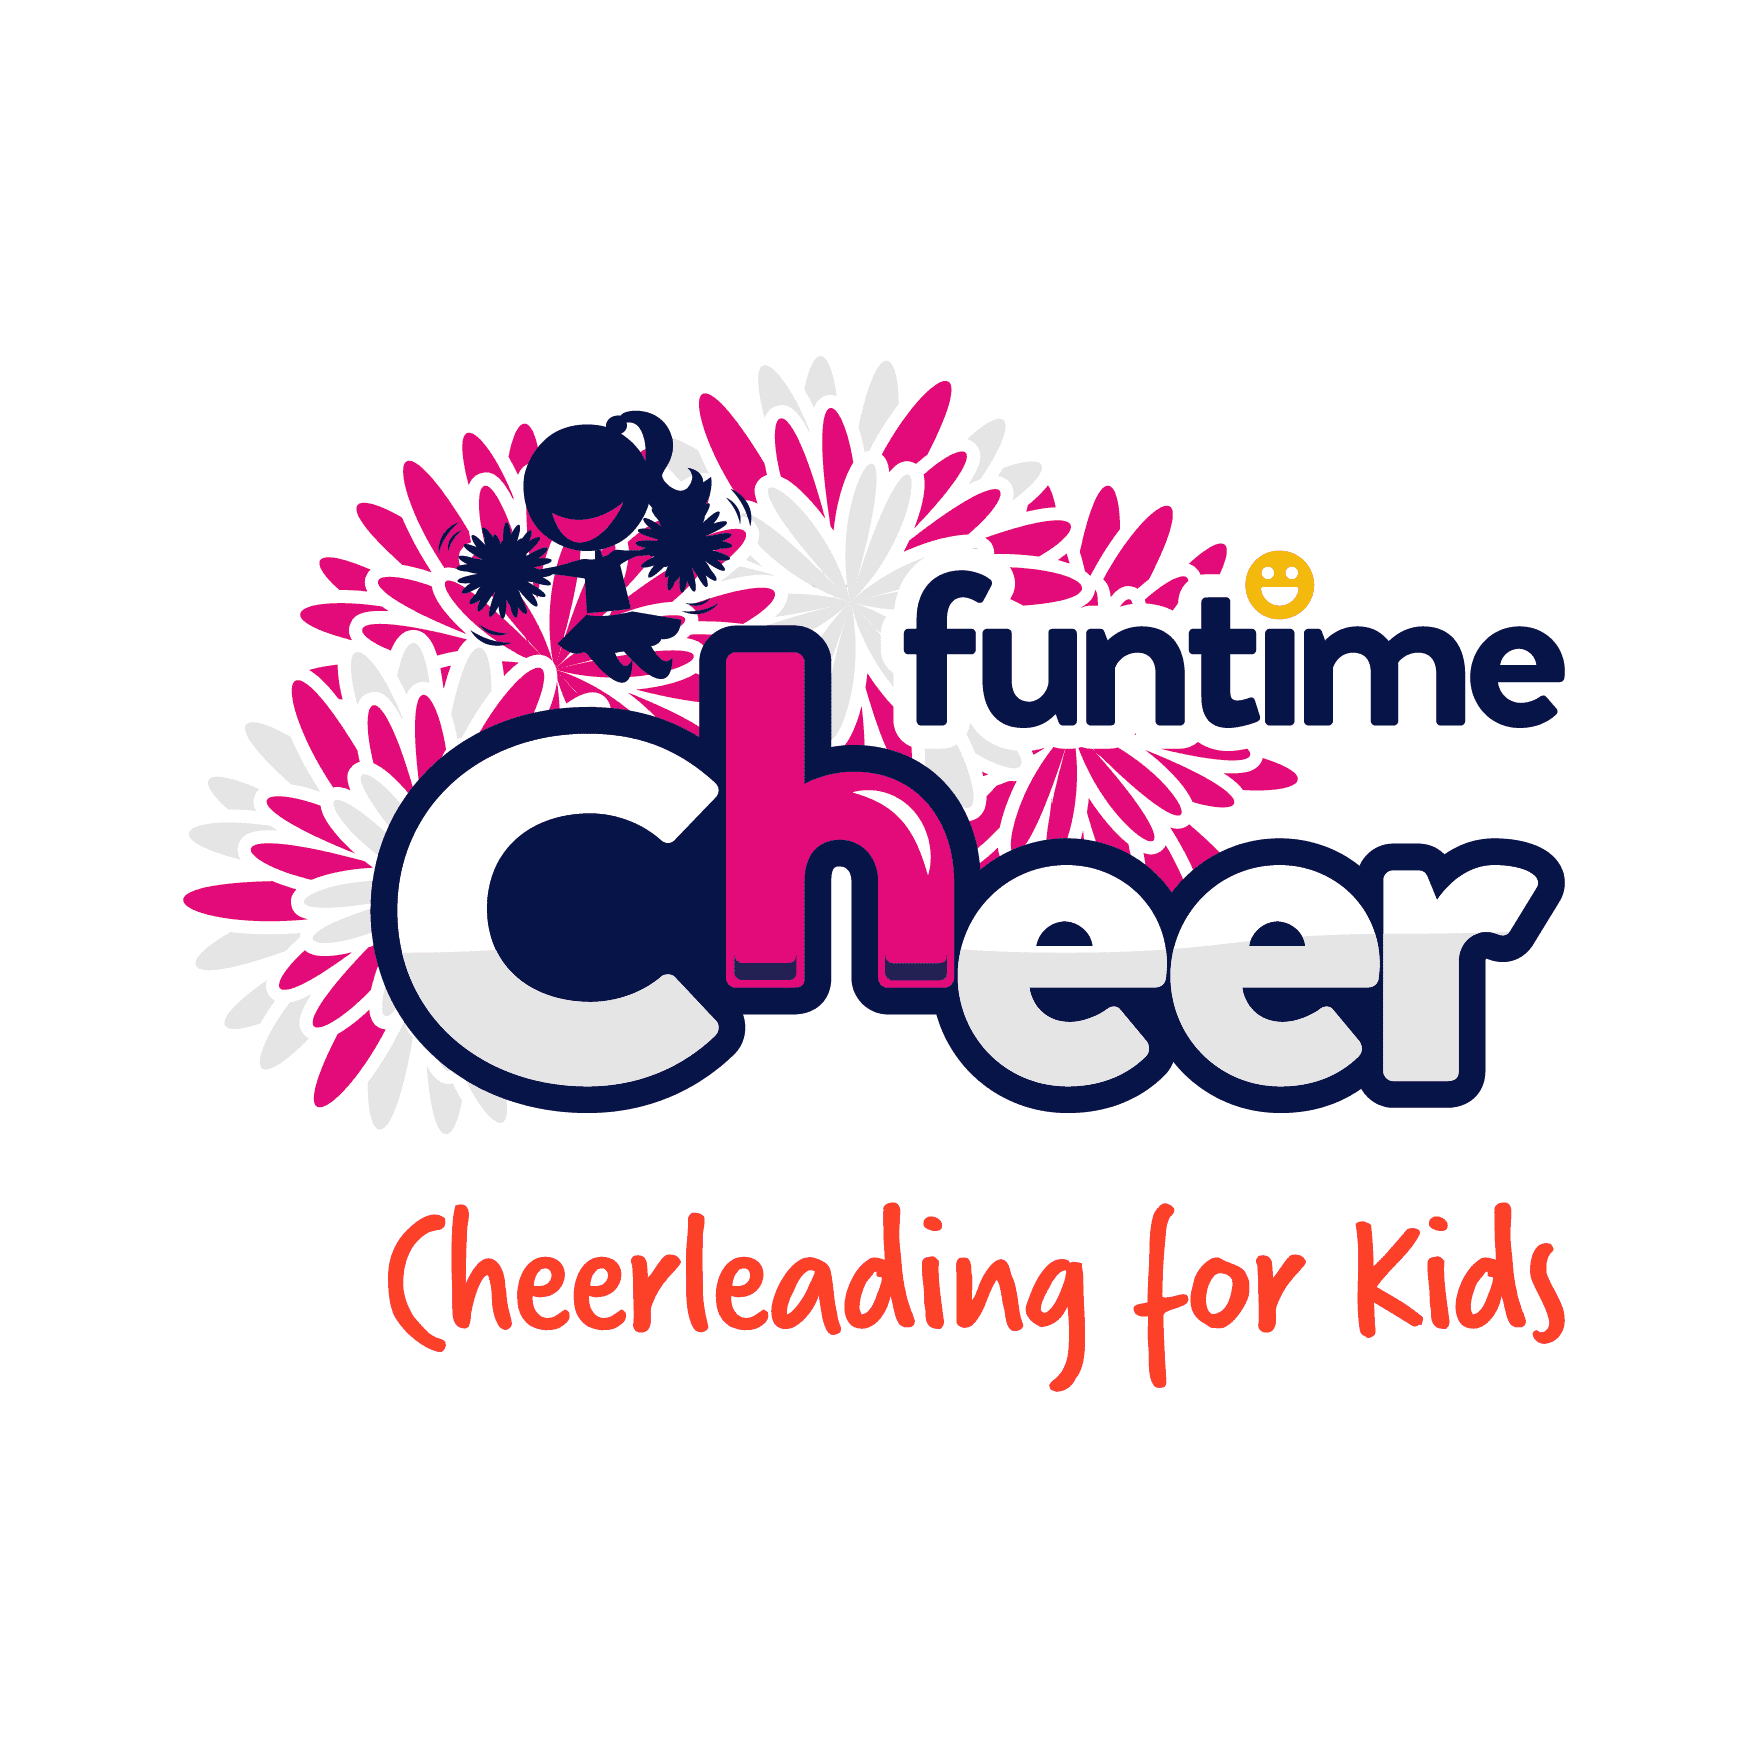 Funtime - Cheerleading for Kids